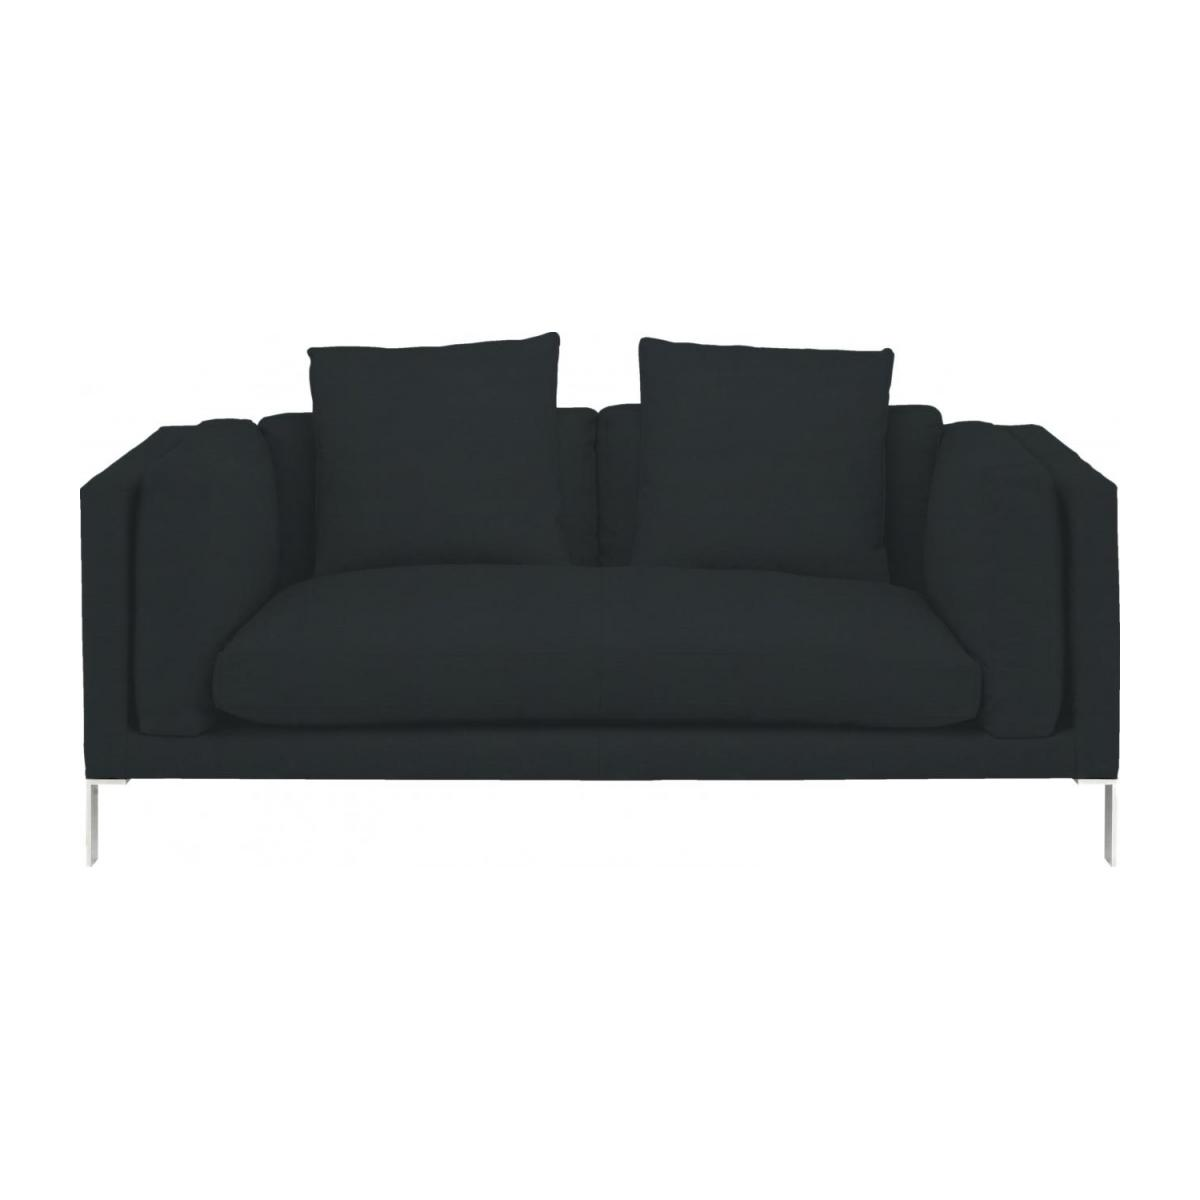 Leather 2 seater sofa n°3